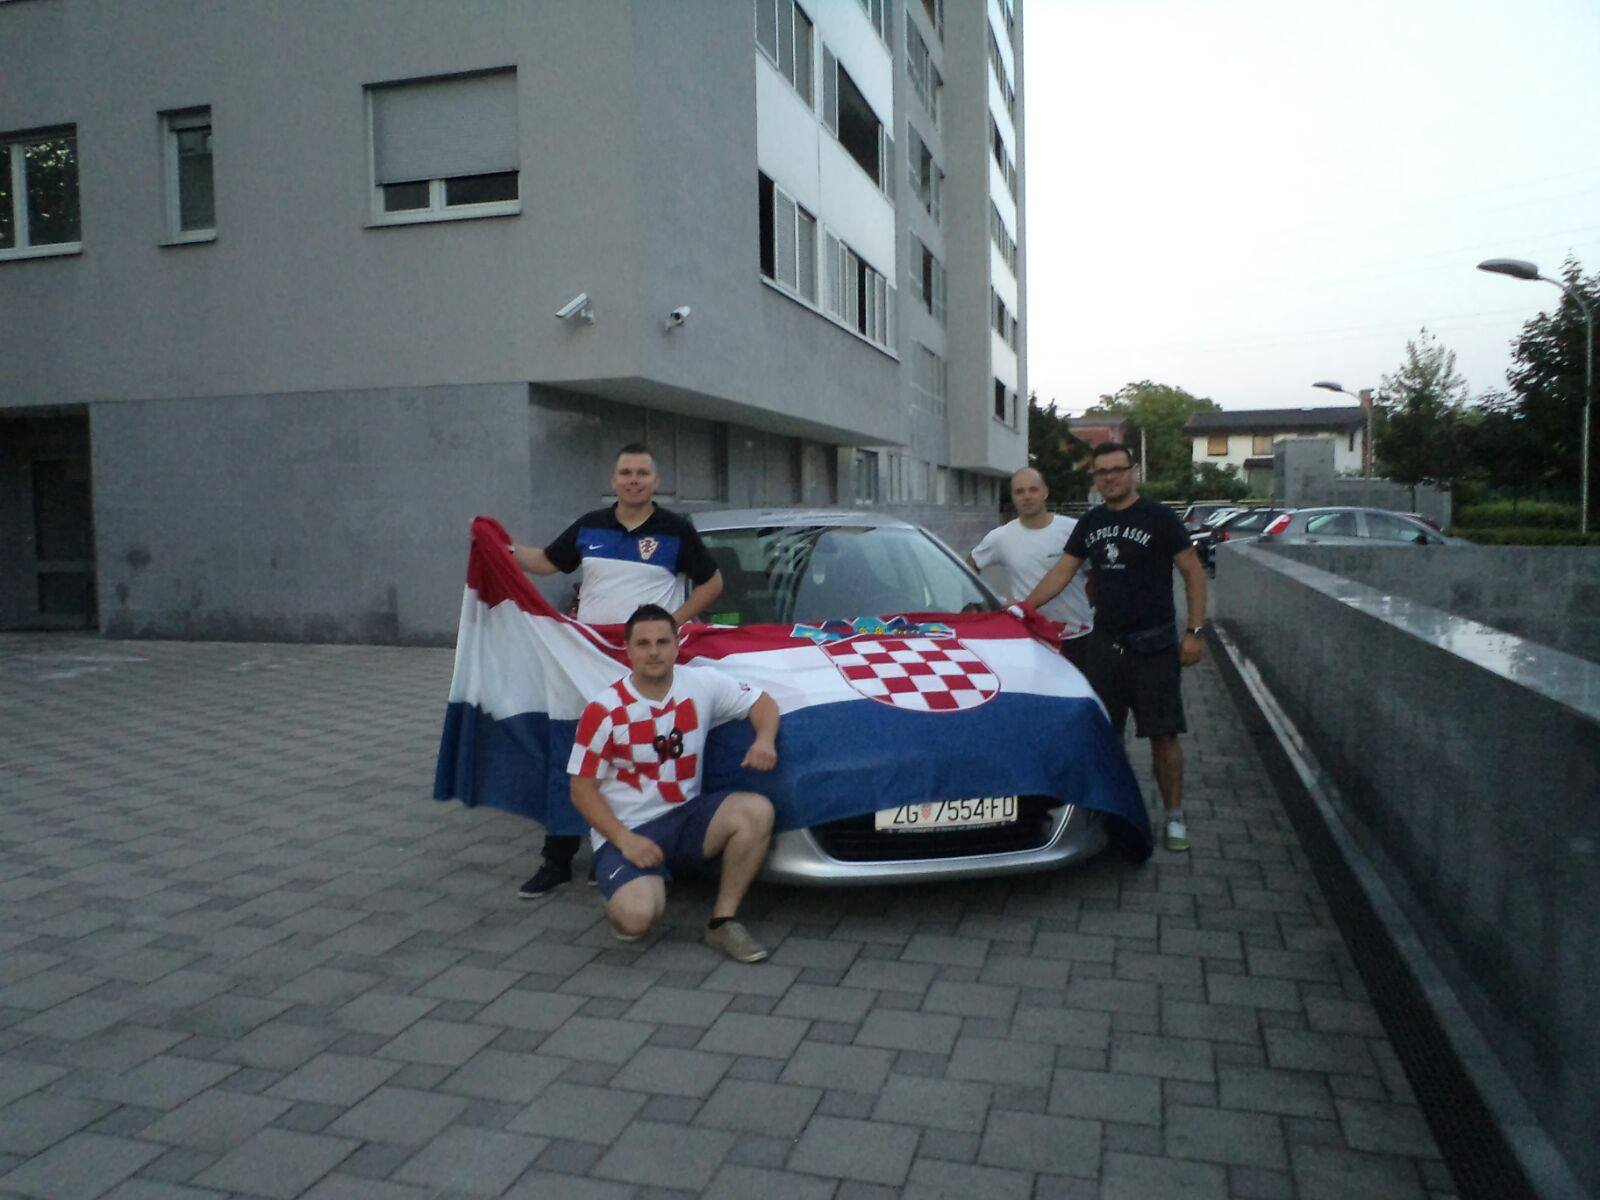 Croatian athletes